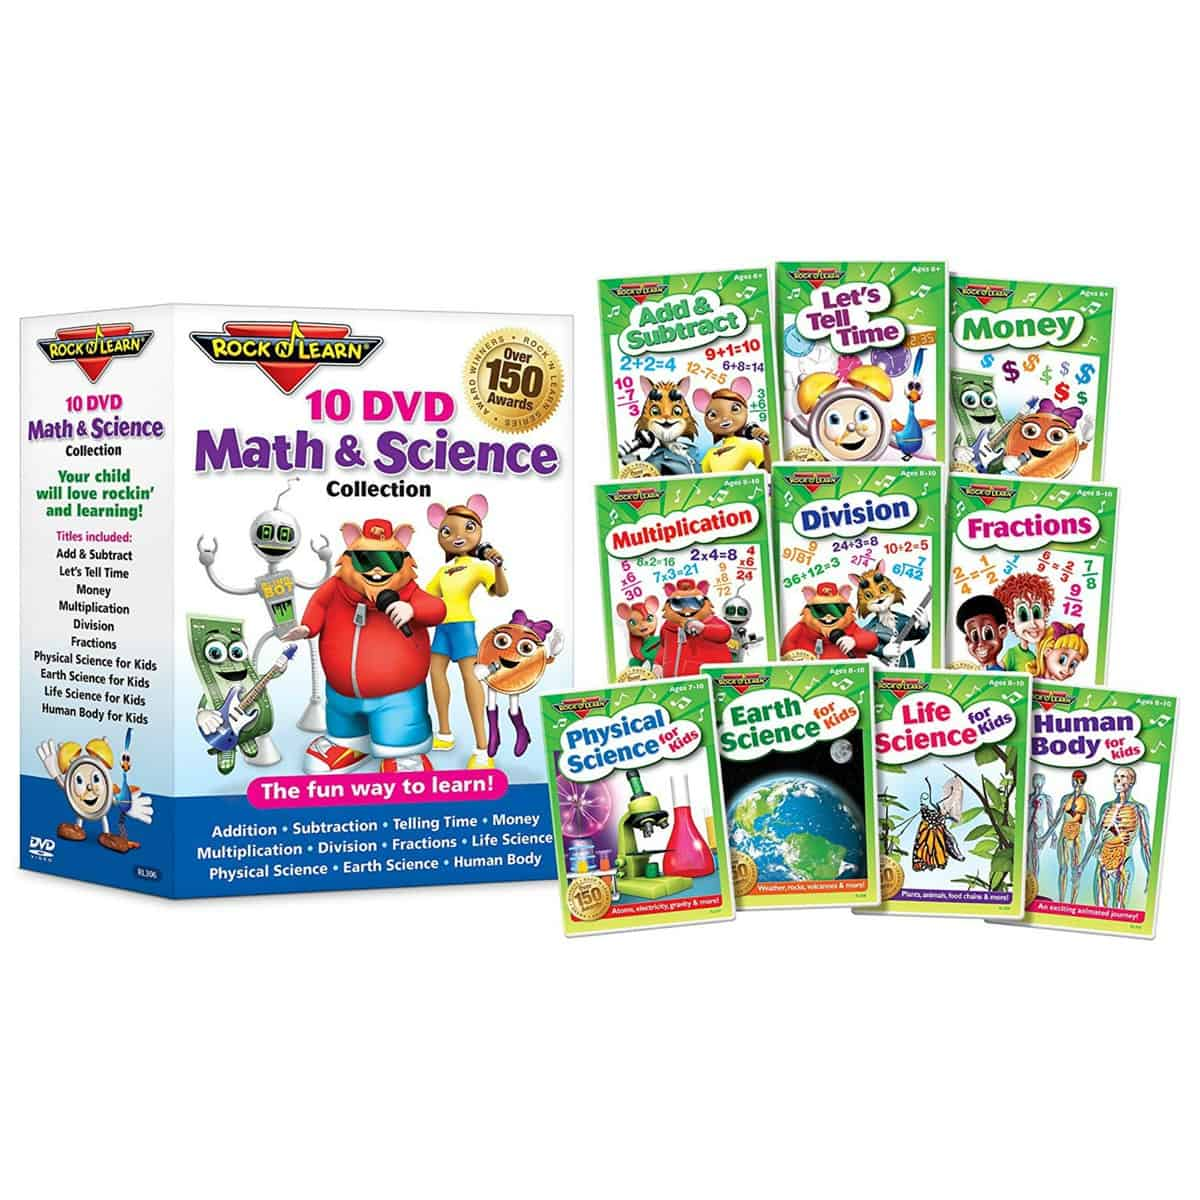 10 DVD Math & Science Collection by Rock 'N Learn